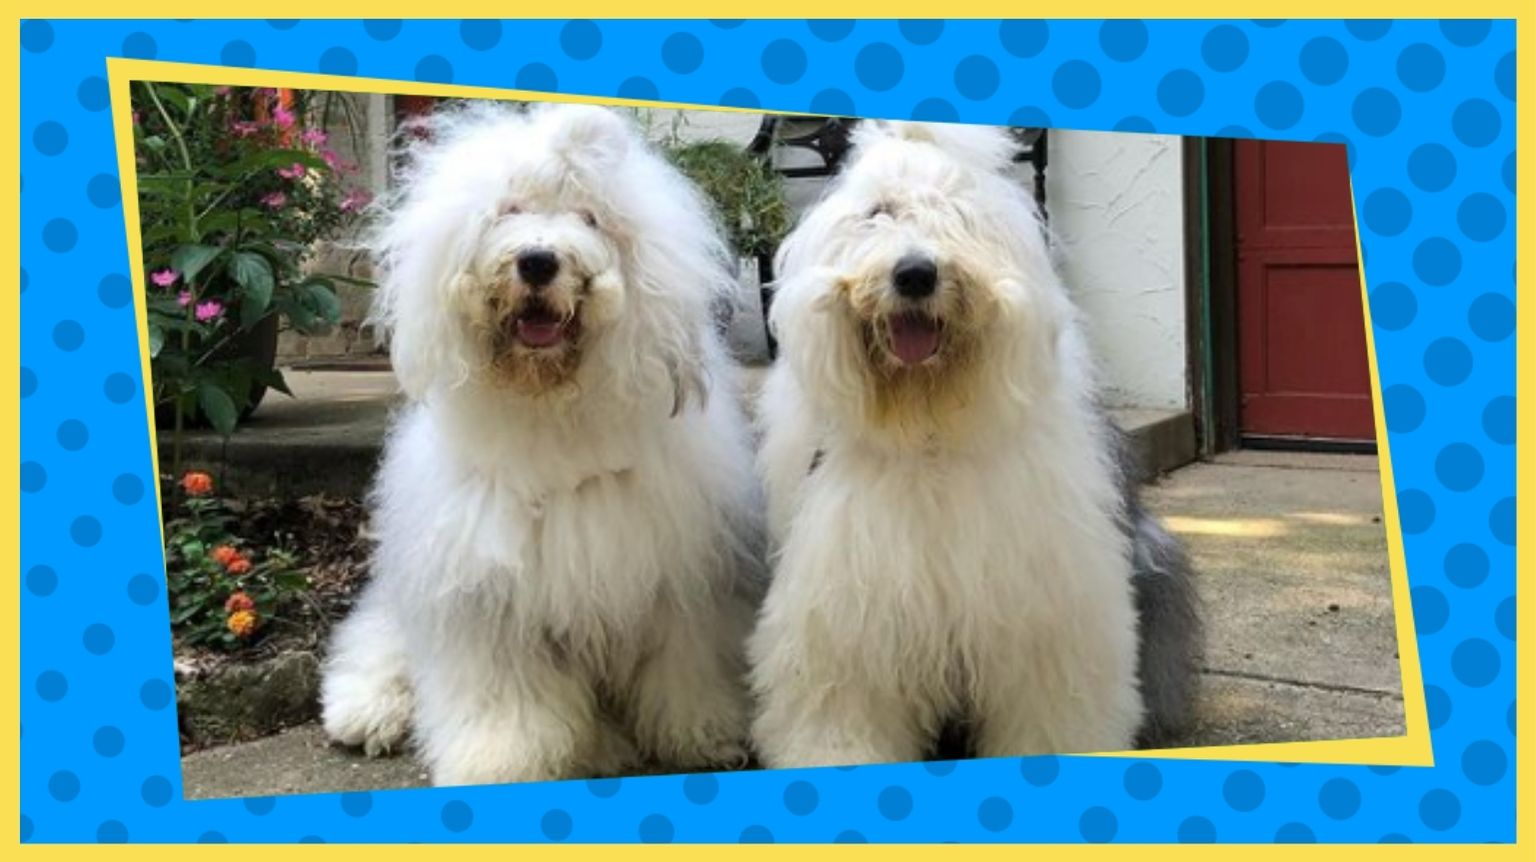 Old English Sheepdogs Winston and Percy